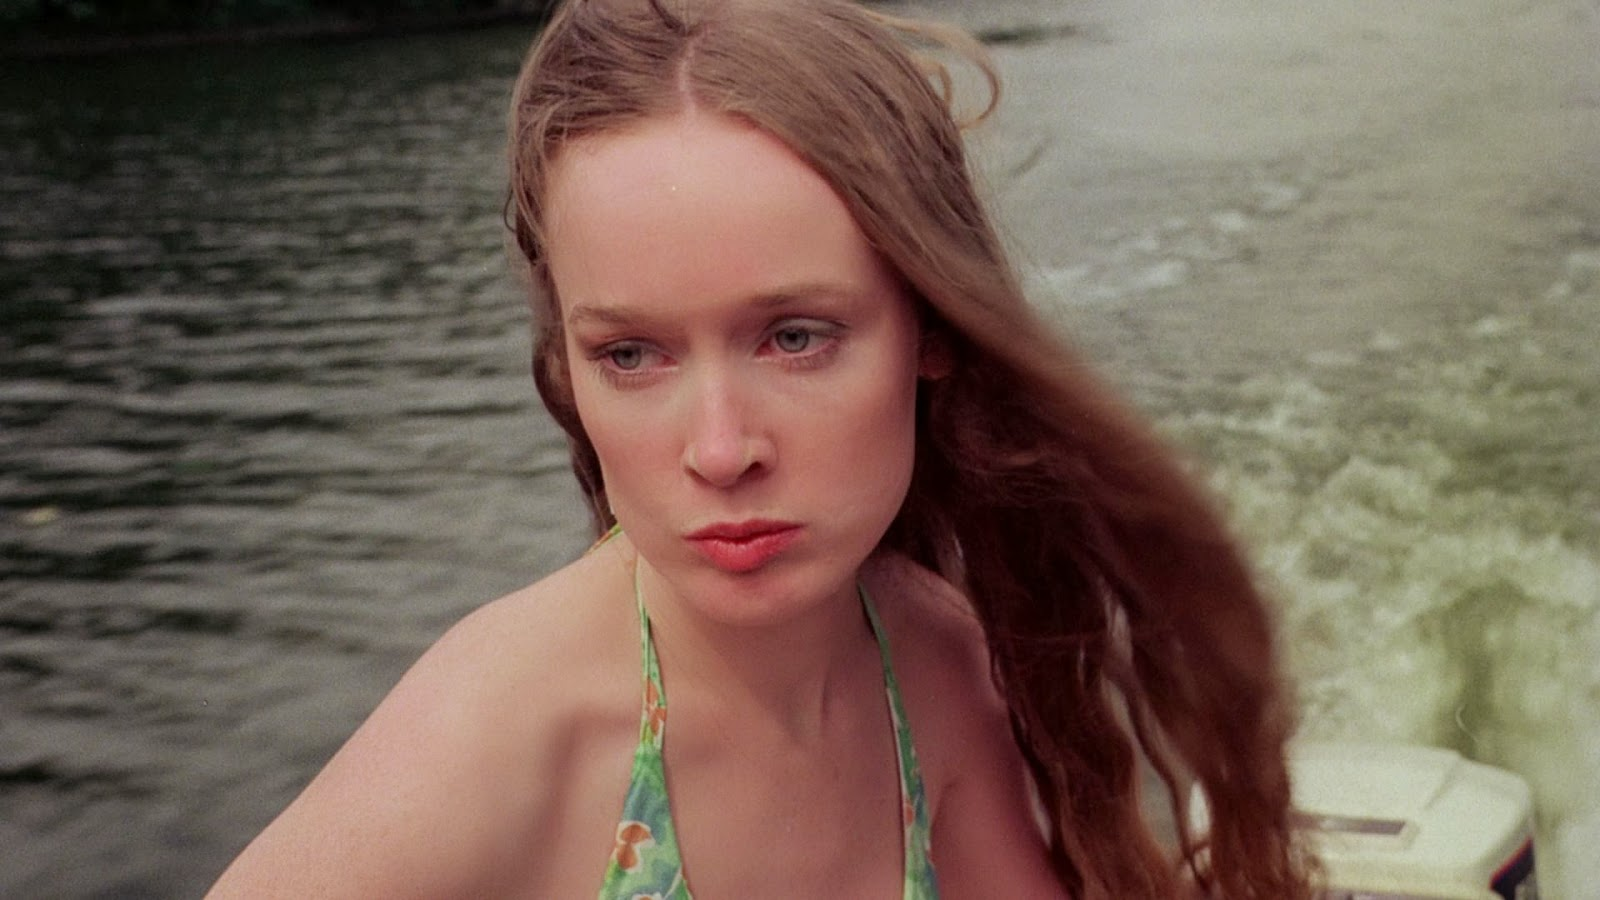 Camille Keaton nudes (52 photos), Ass, Paparazzi, Instagram, butt 2006